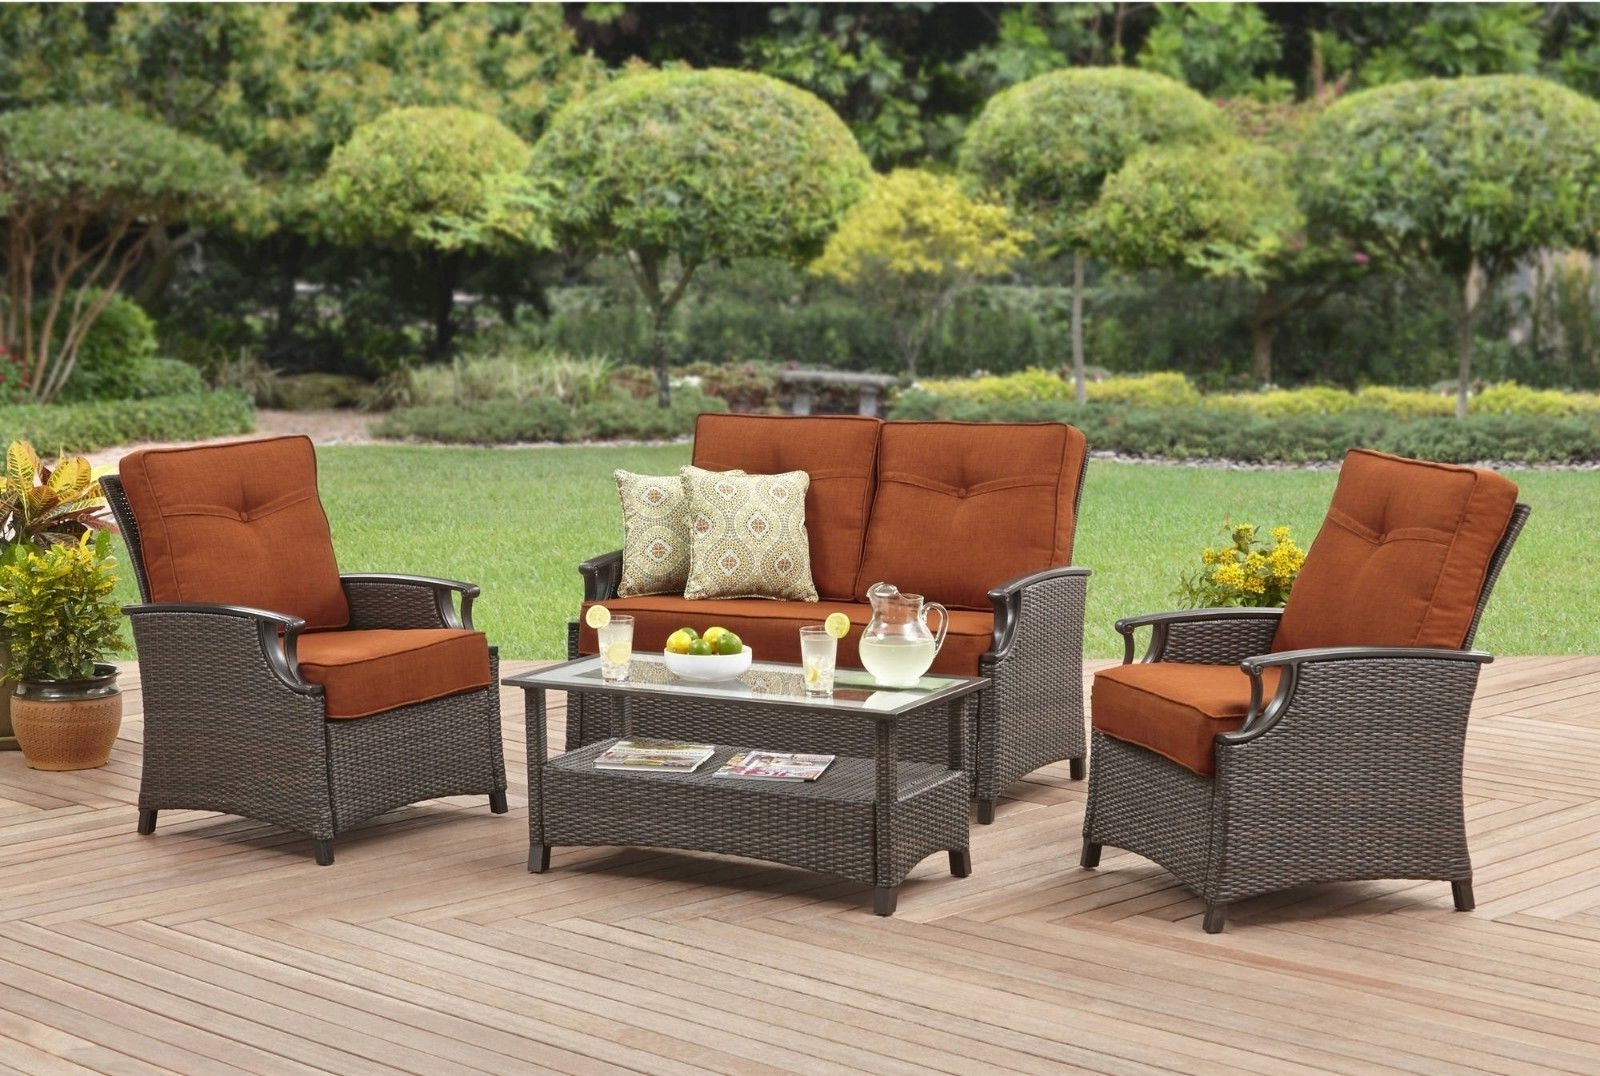 Ebay Patio Conversation Sets With 2017 4 Piece Conversation Patio Furniture Set Wiker Sofa Outdoor Loveseat (Gallery 2 of 15)